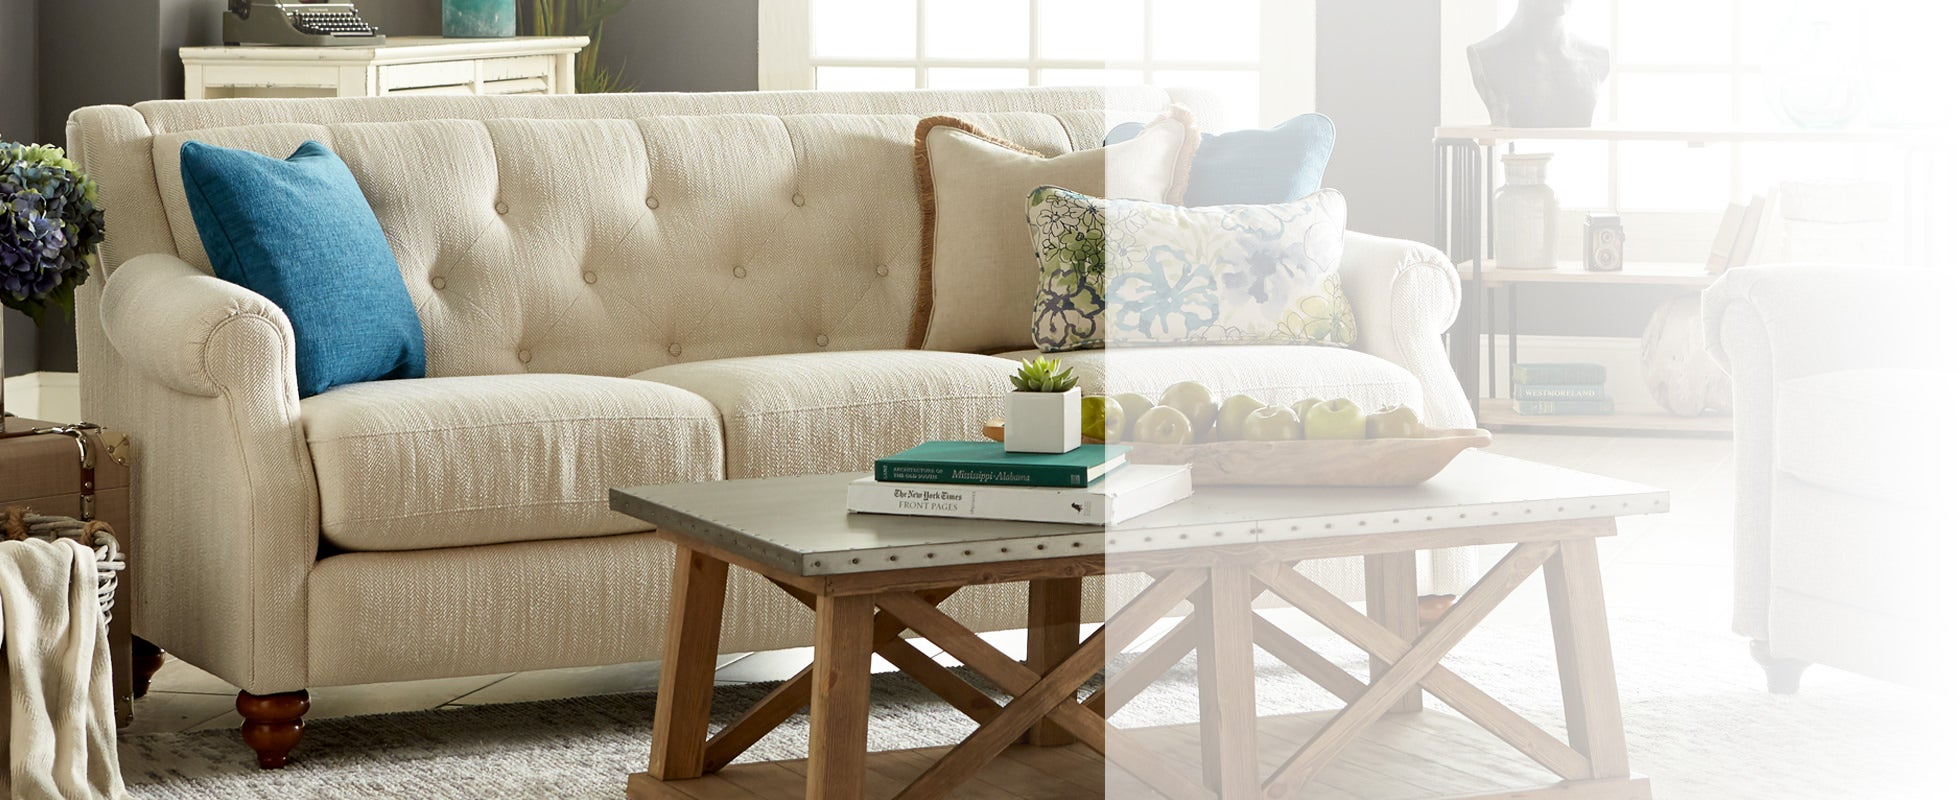 Sofa sets are the center of your living room.